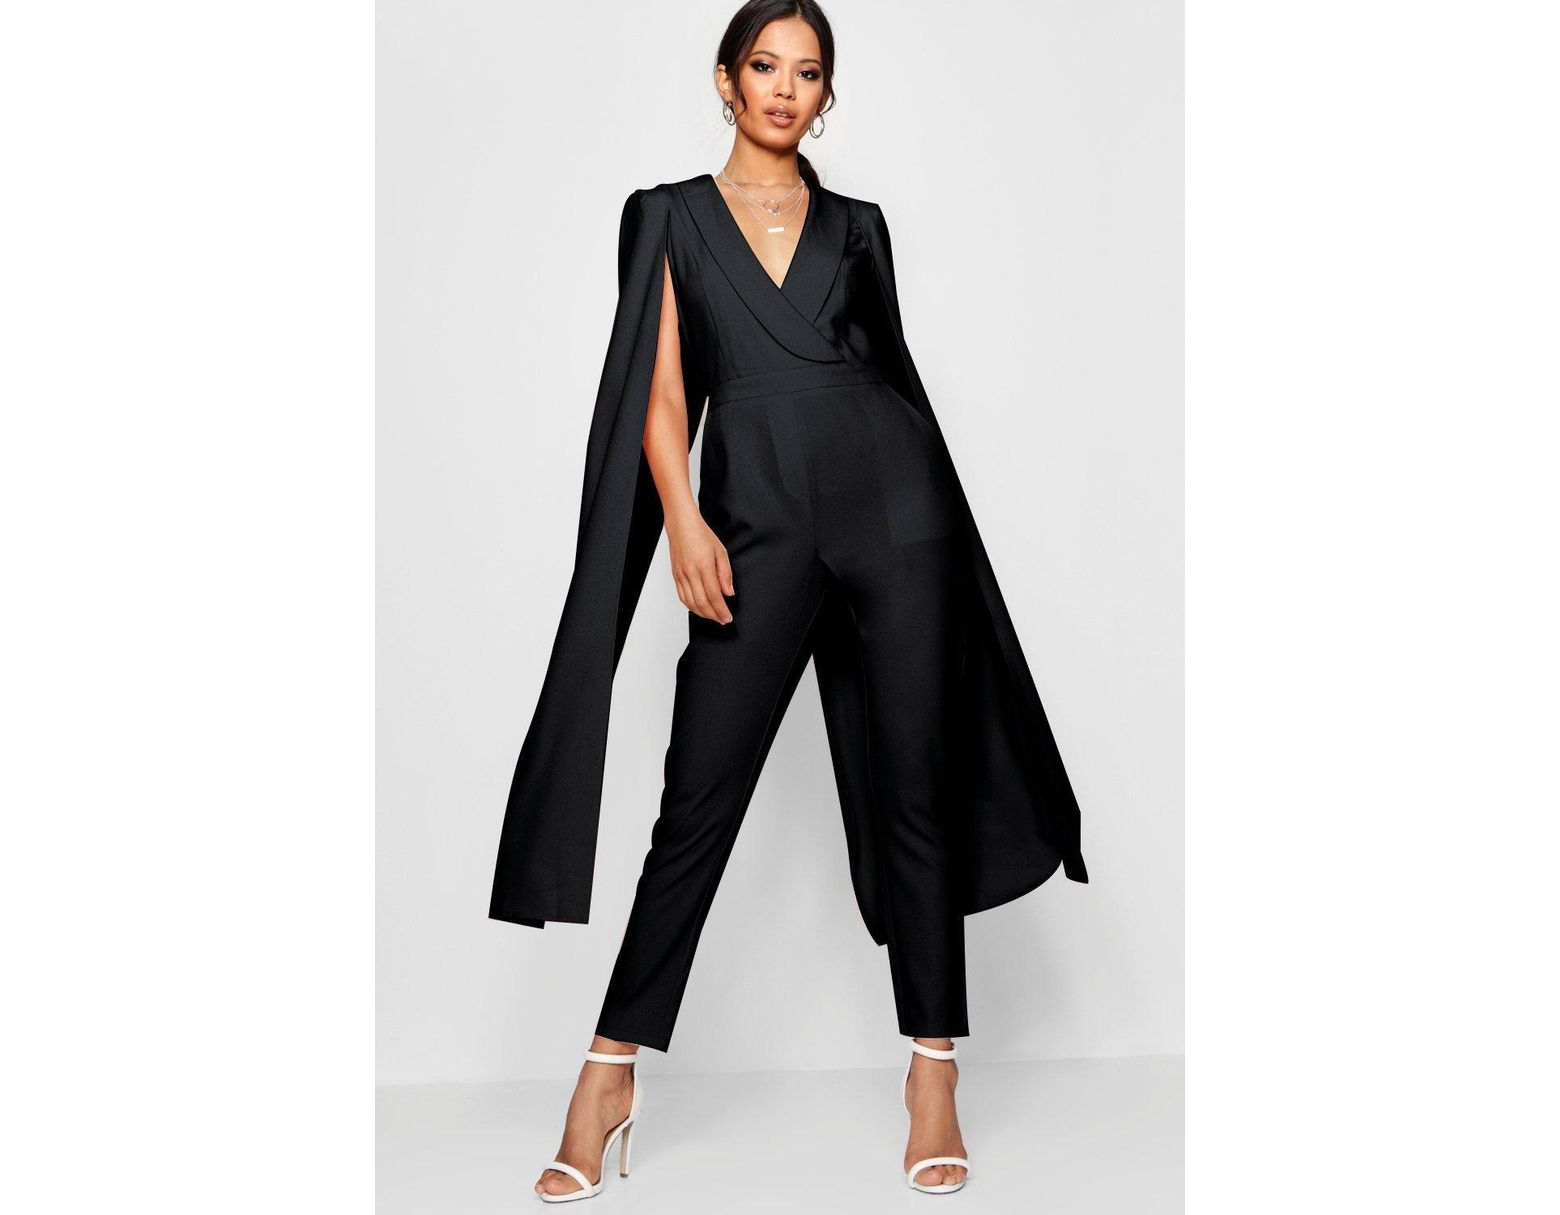 e4ba1b0df7 Boohoo Cape Woven Tailored Jumpsuit in Black - Lyst